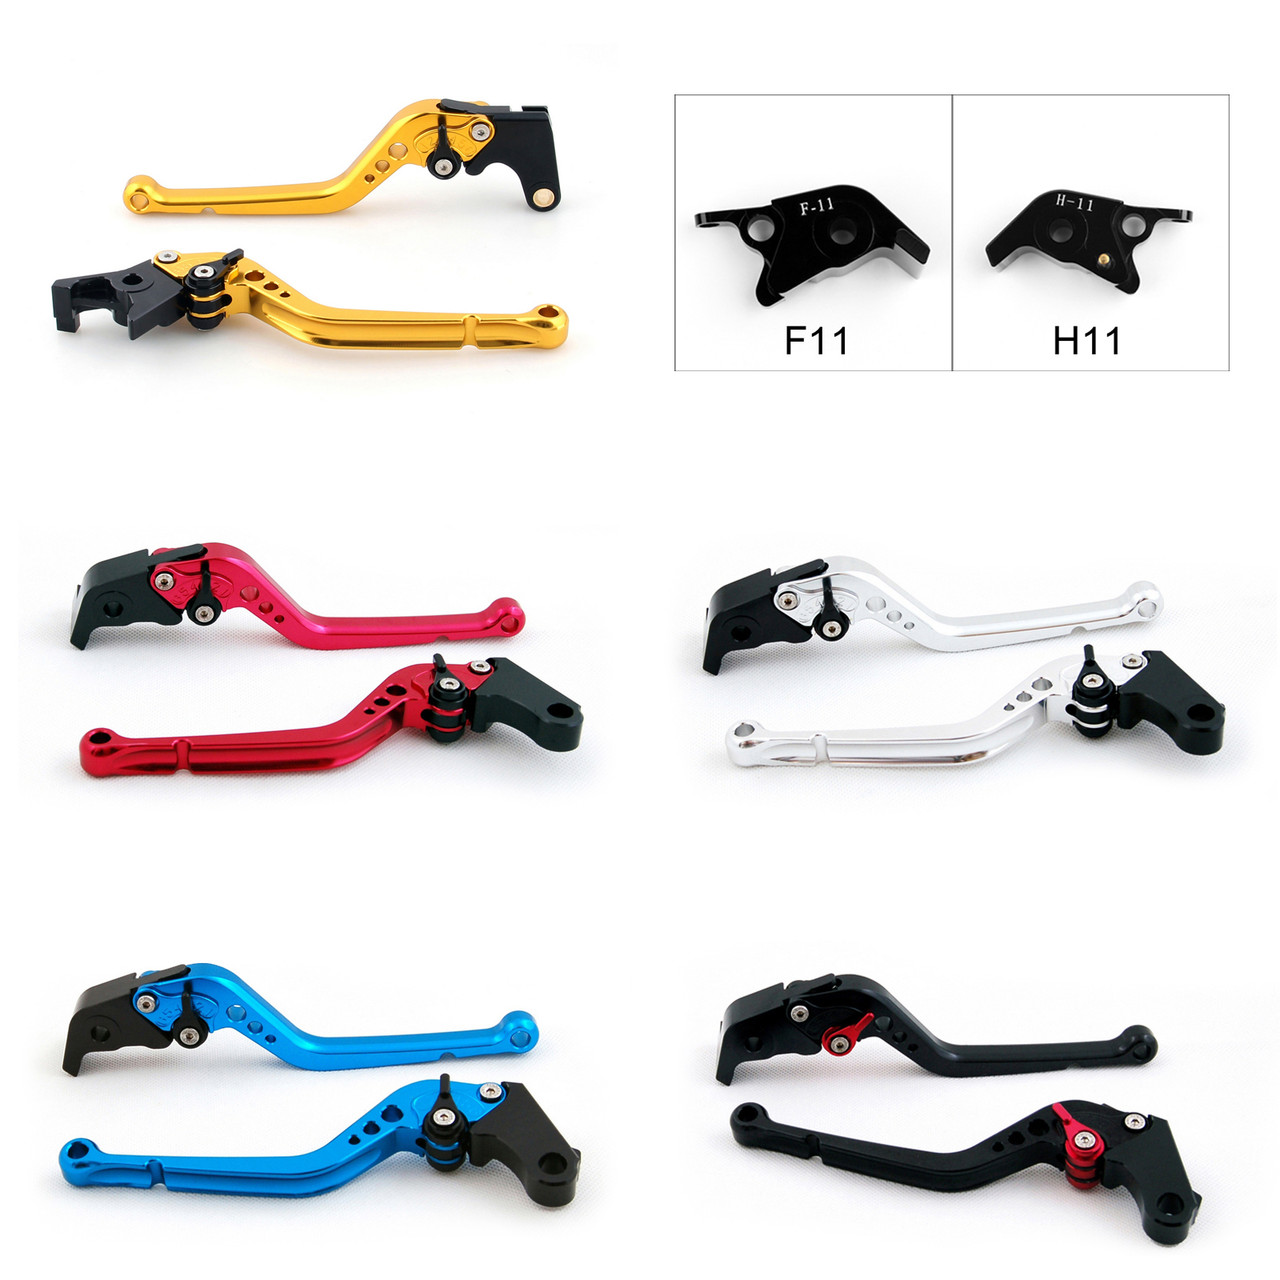 Standard Staff Length Adjustable Brake Clutch Levers Ducati 1198 /S/ R 2009-2011